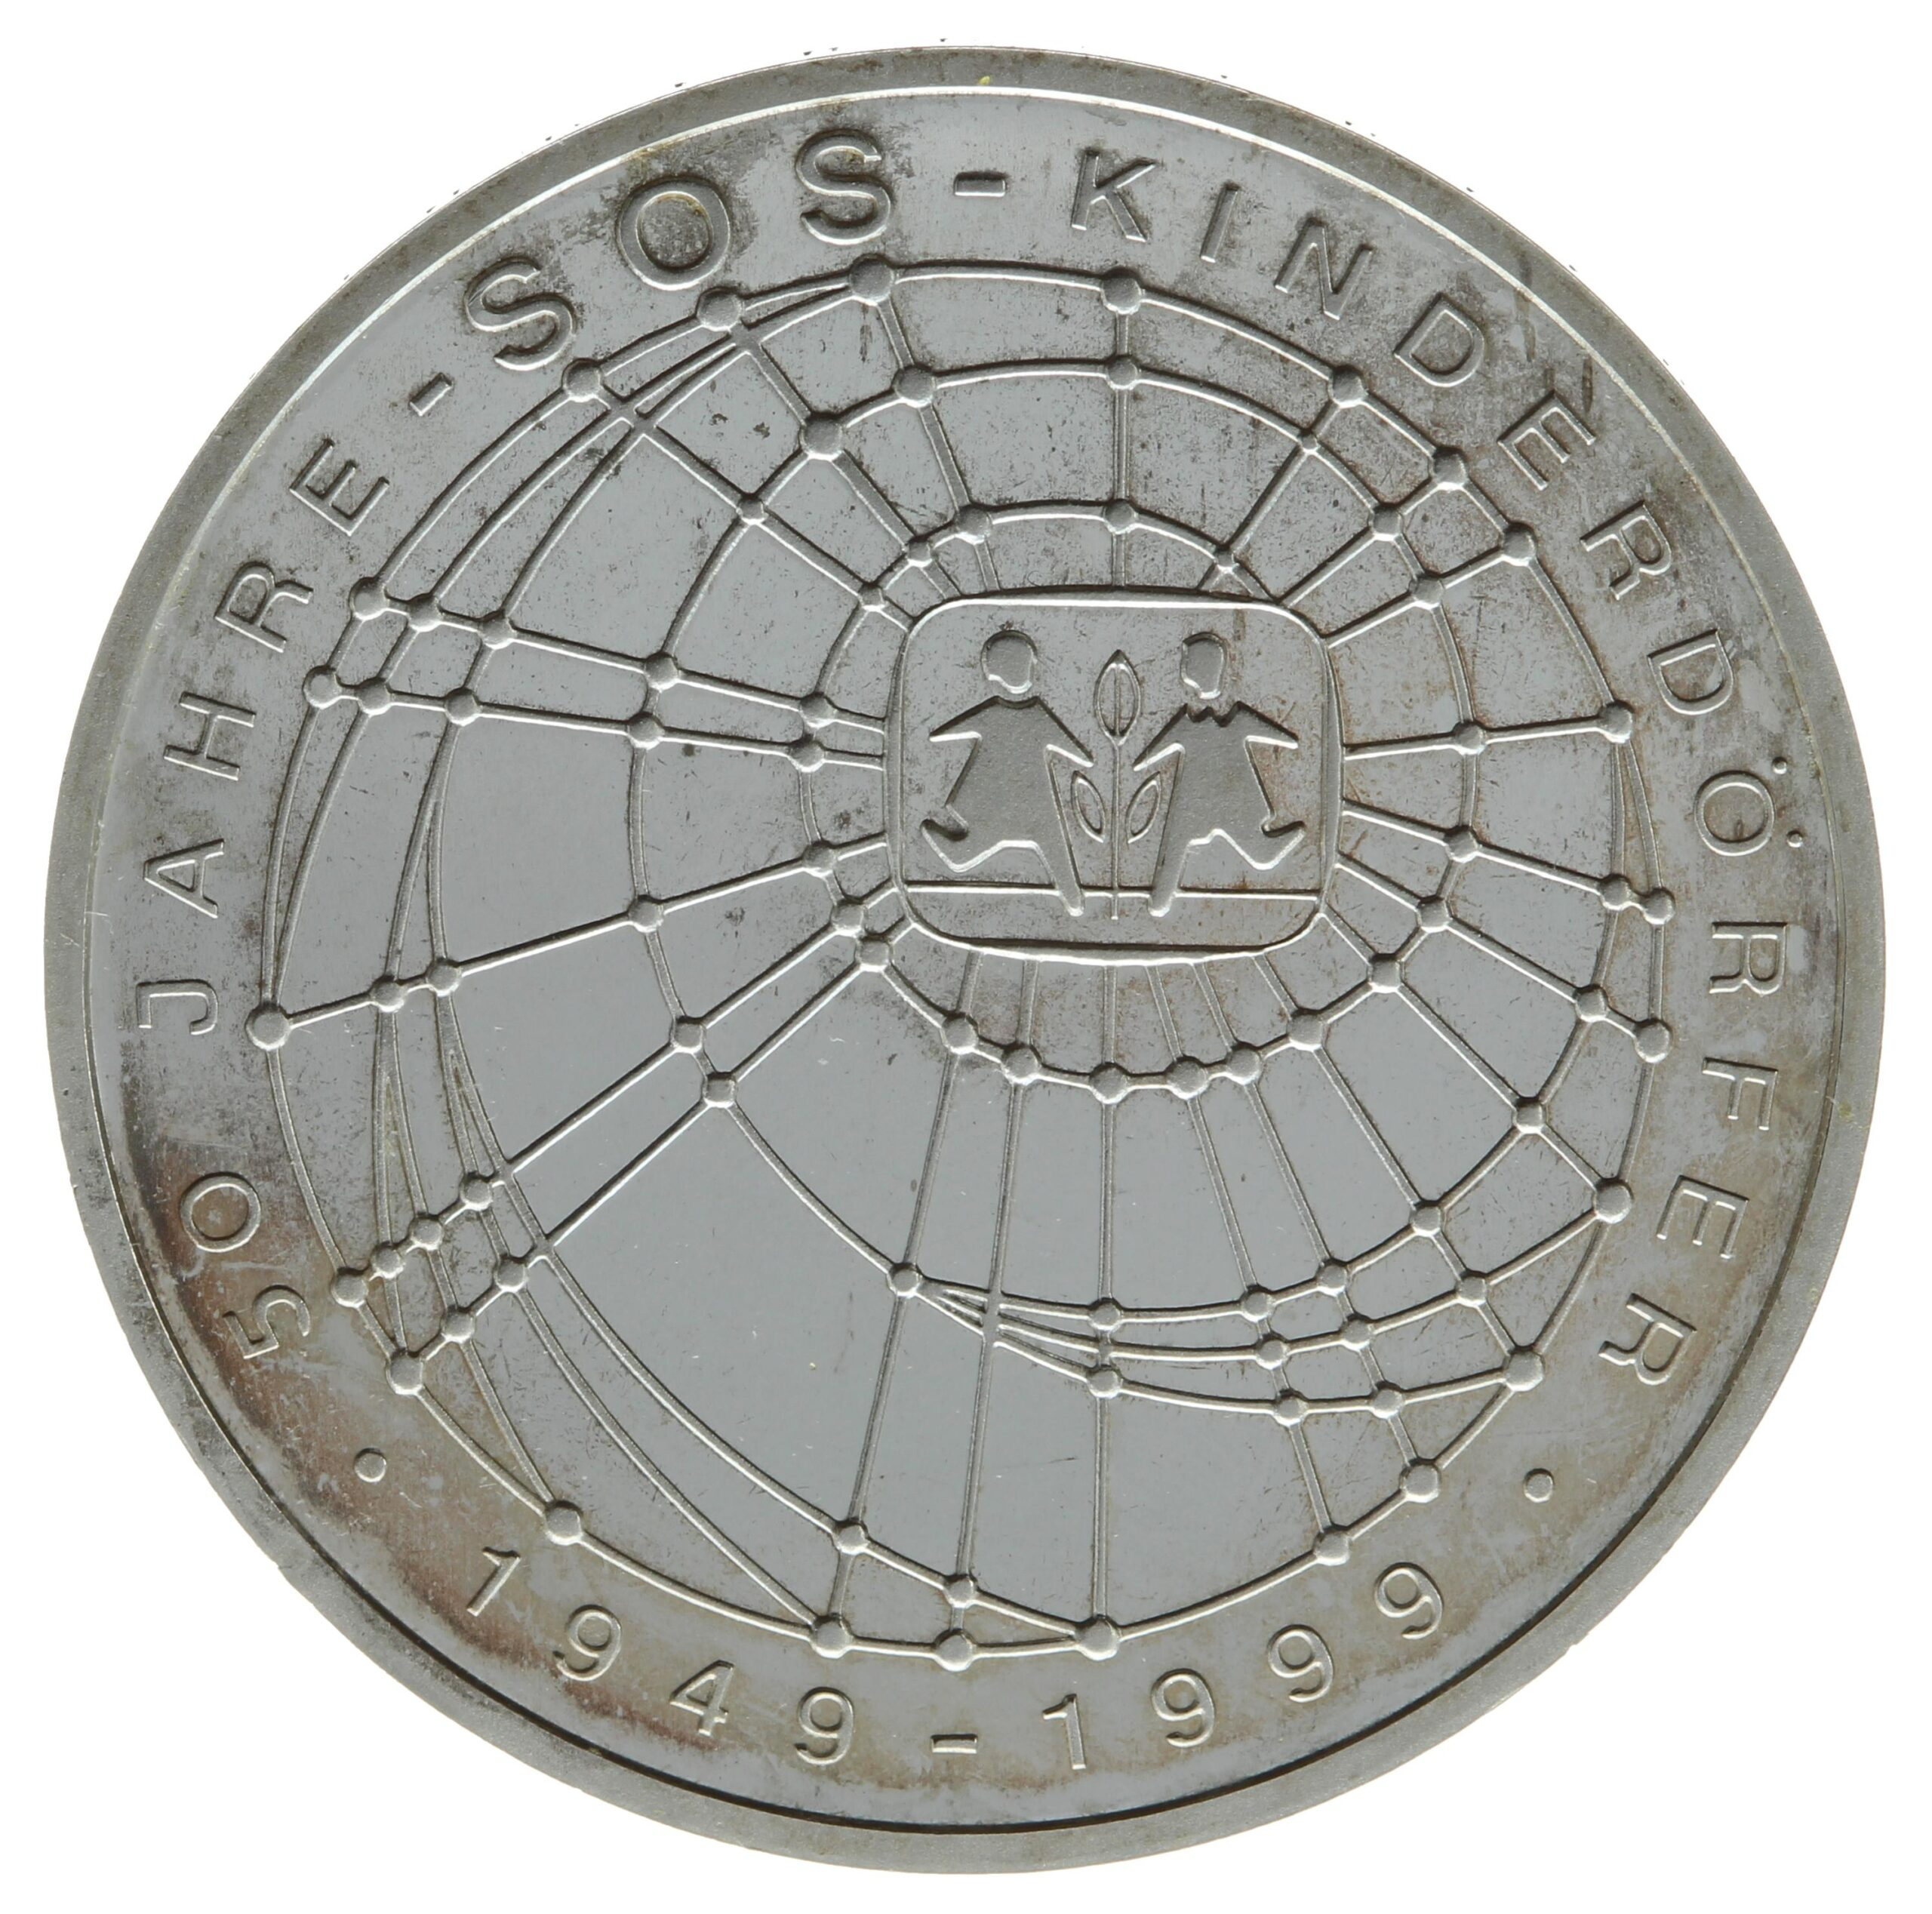 DE 10 Deutsche Mark 1999 D